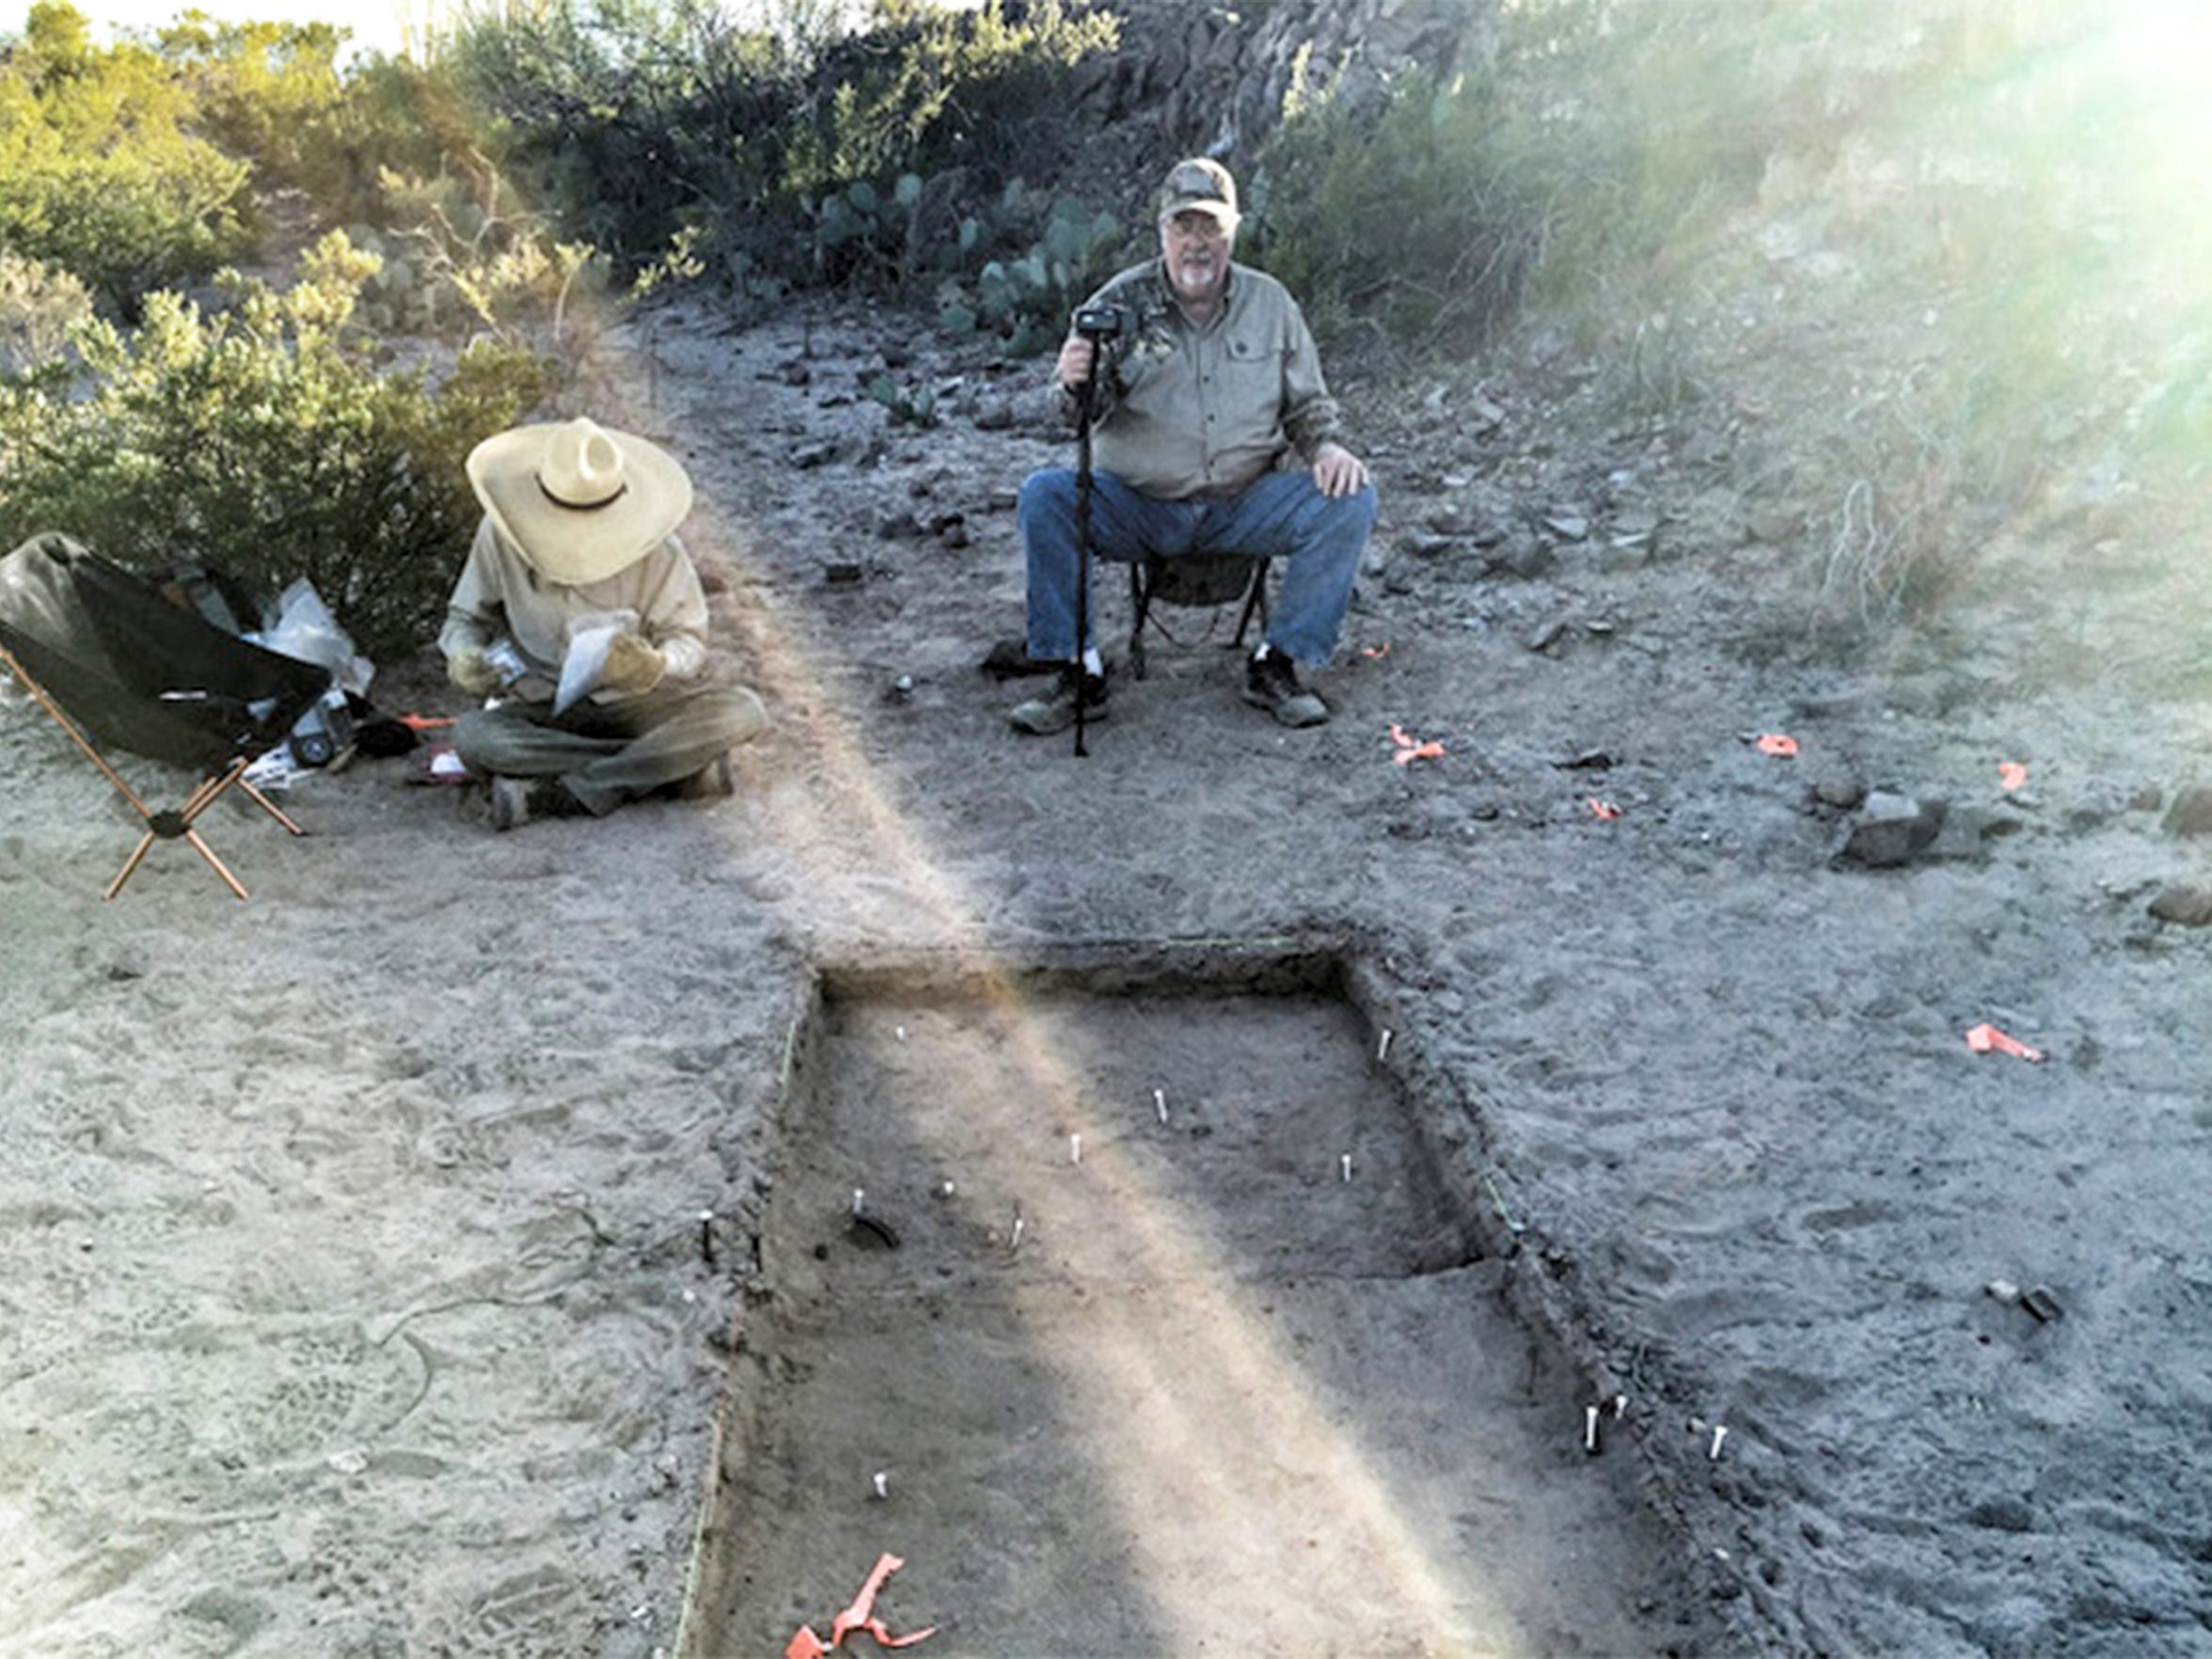 An archaeological dig is conducted in November 2015 at the Porvenir massacre site.